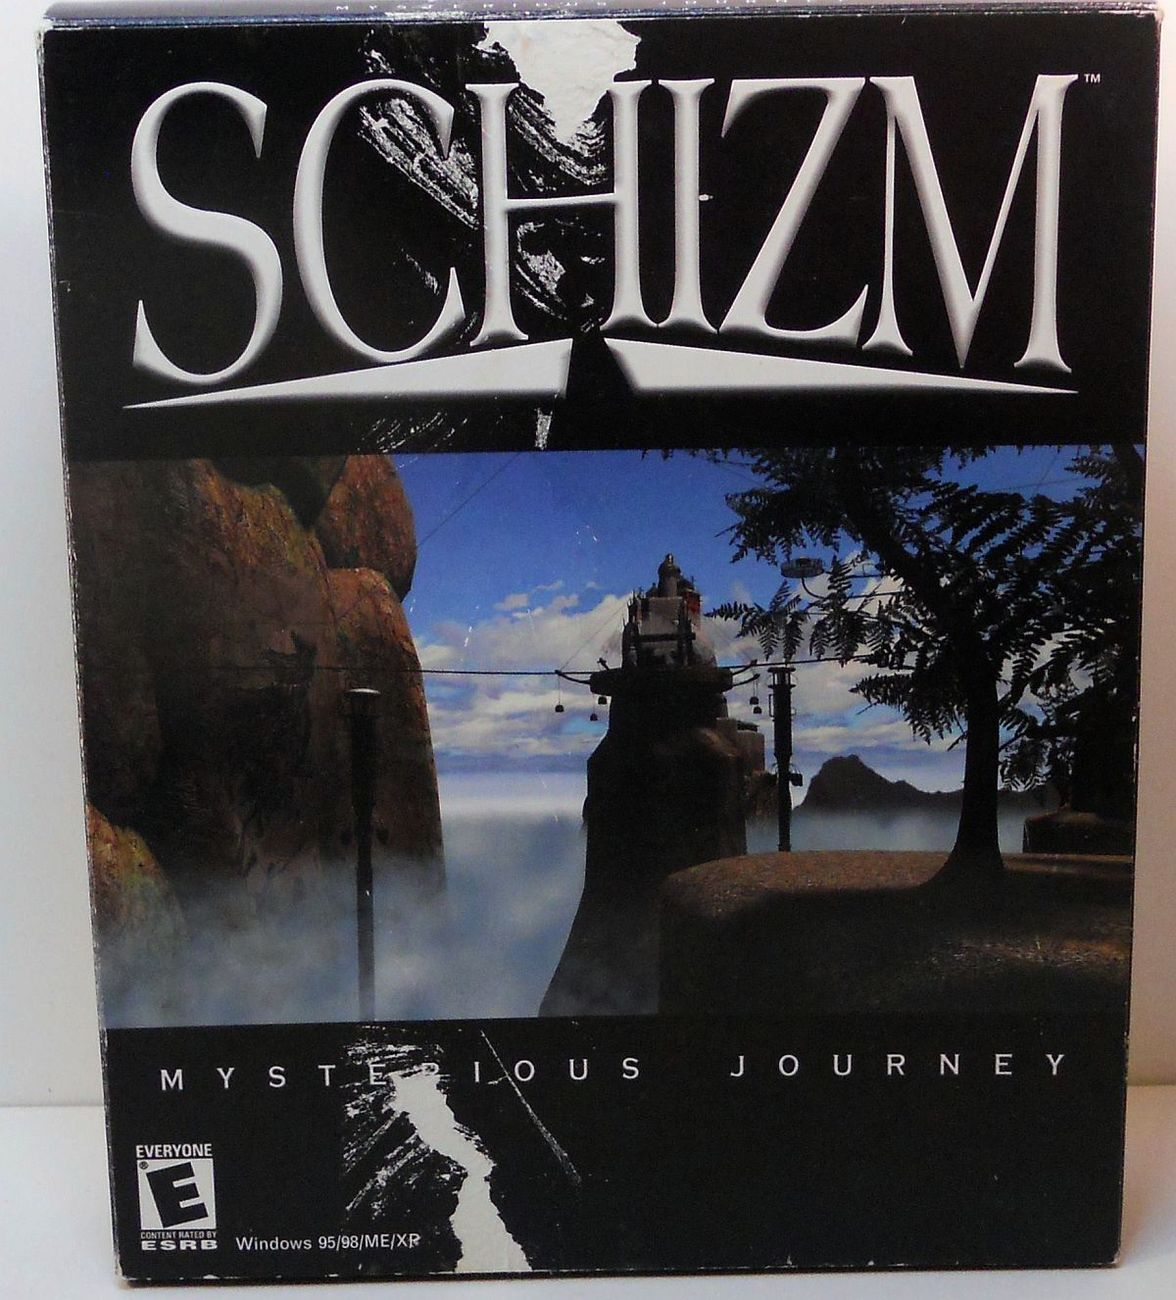 Schizm Mysterious Journey PC game  Science Fiction Everyone